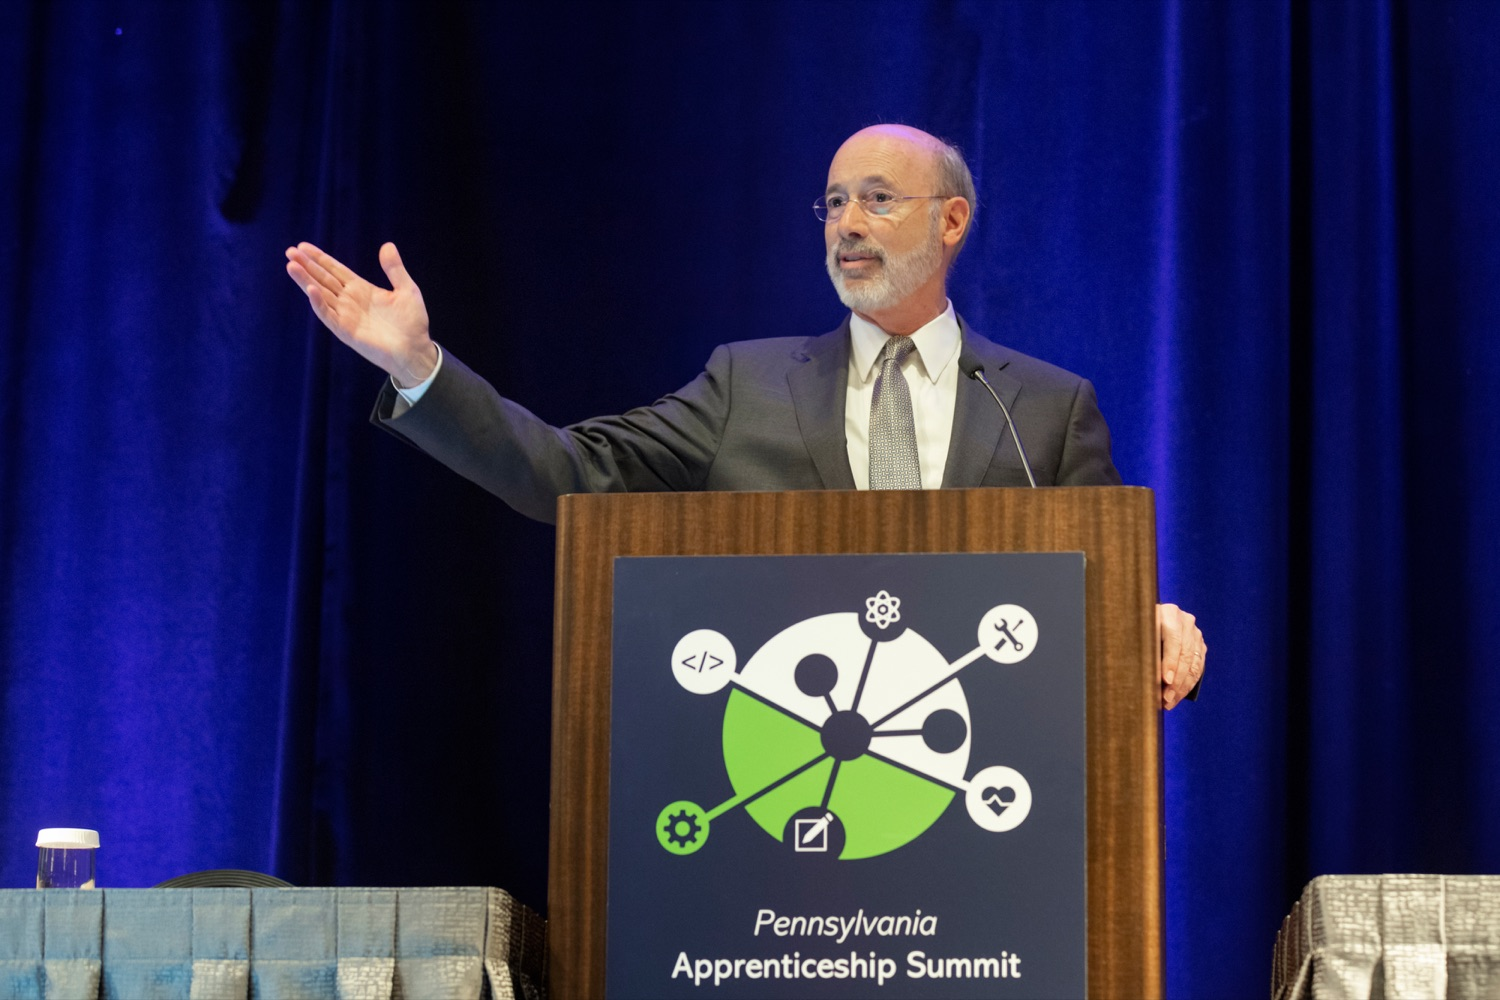 """<a href=""""http://filesource.abacast.com/commonwealthofpa/photo/17520_LandI_Apprenticeships_NK_002.JPG"""" target=""""_blank"""">⇣Download Photo<br></a>Pennsylvania Governor Tom Wolf speaks during the 2019 Pennsylvania Apprenticeship Summit at Hershey Lodge on Thursday, October 31, 2019."""